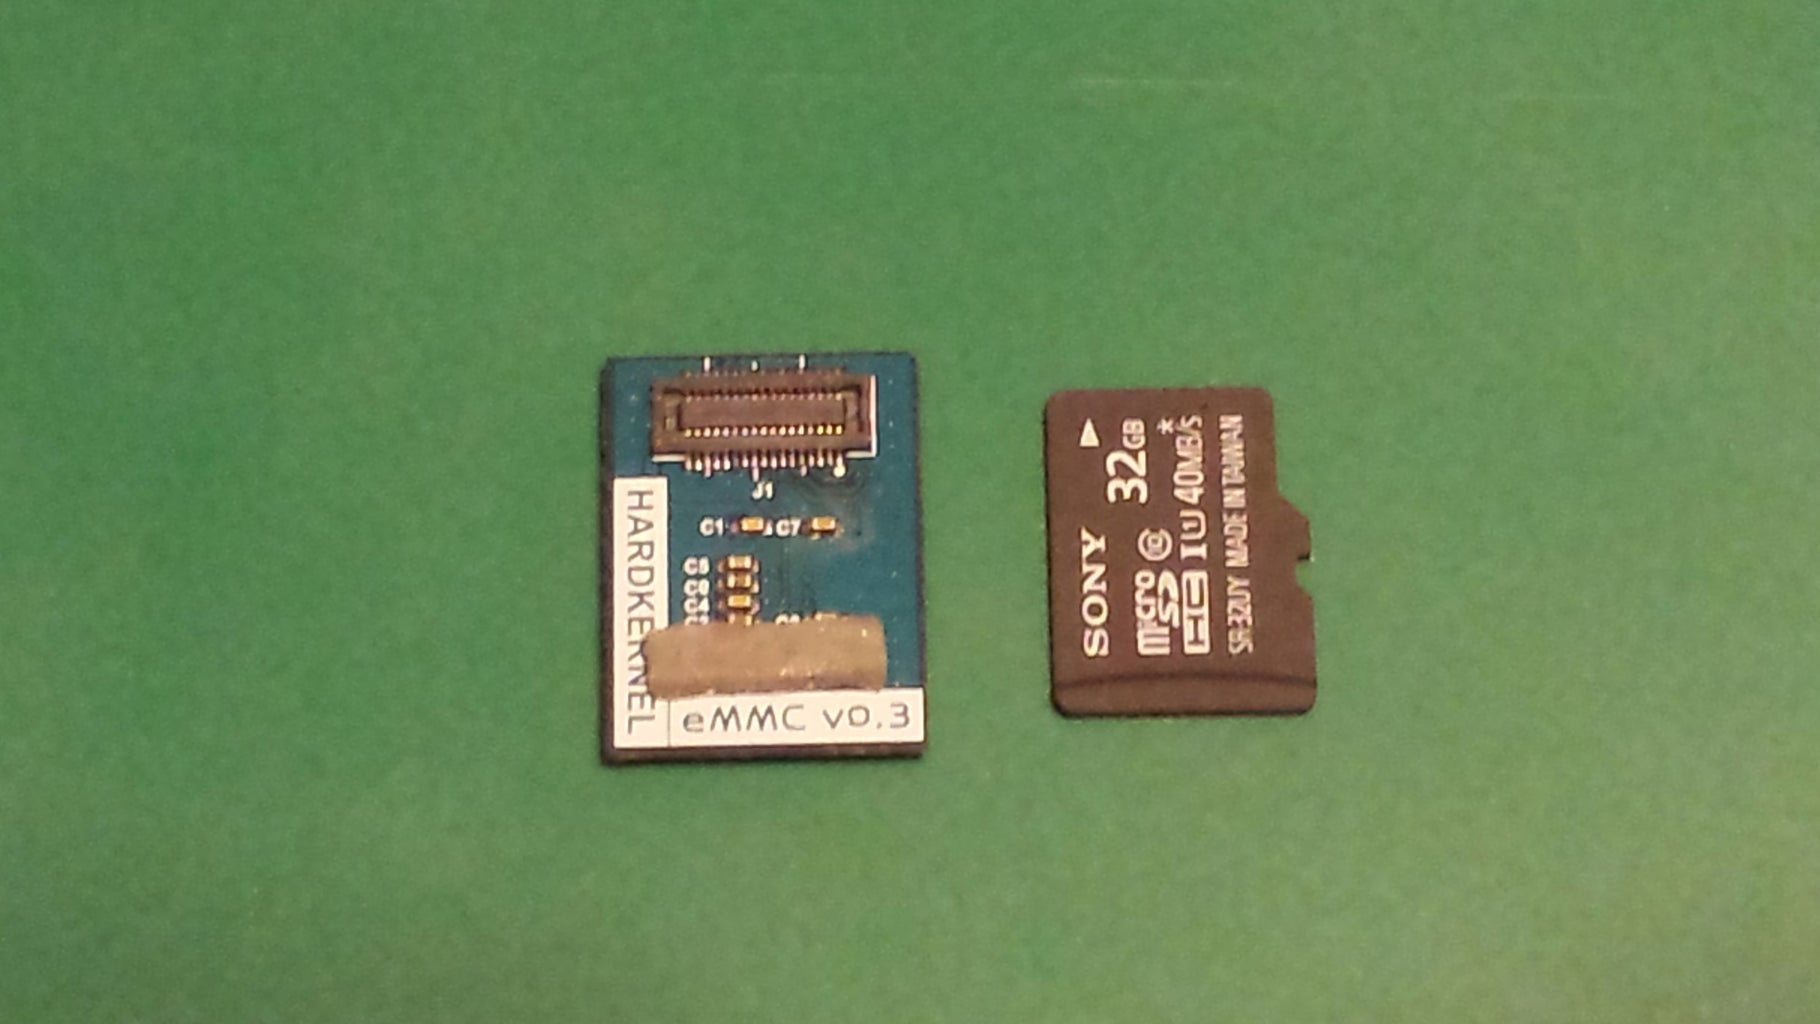 Setting Up the Operating Systems (Preparing the Micro SD and EMMC Cards)